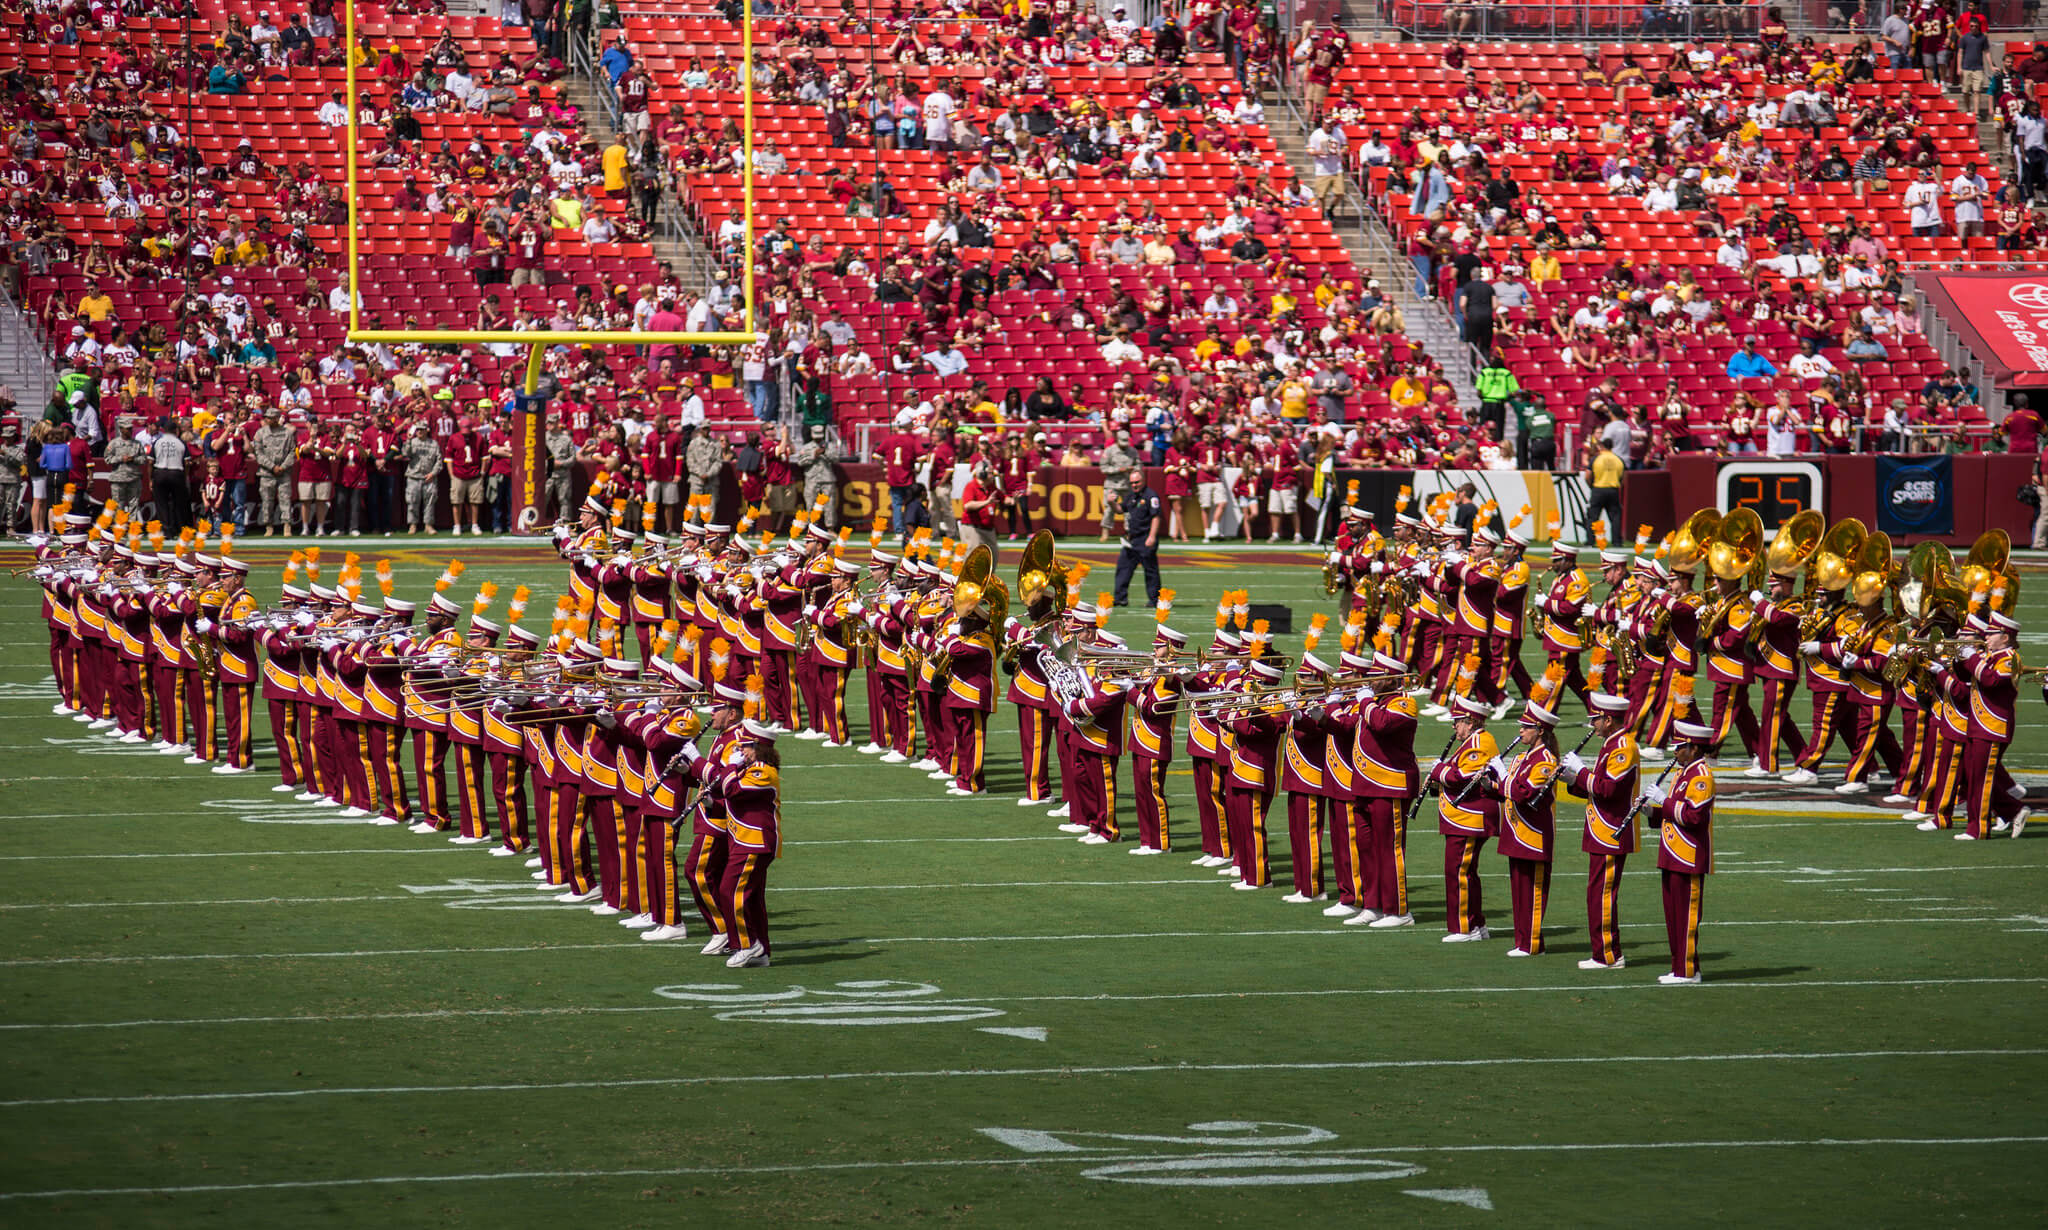 Washington Redskins band at FedEx Field